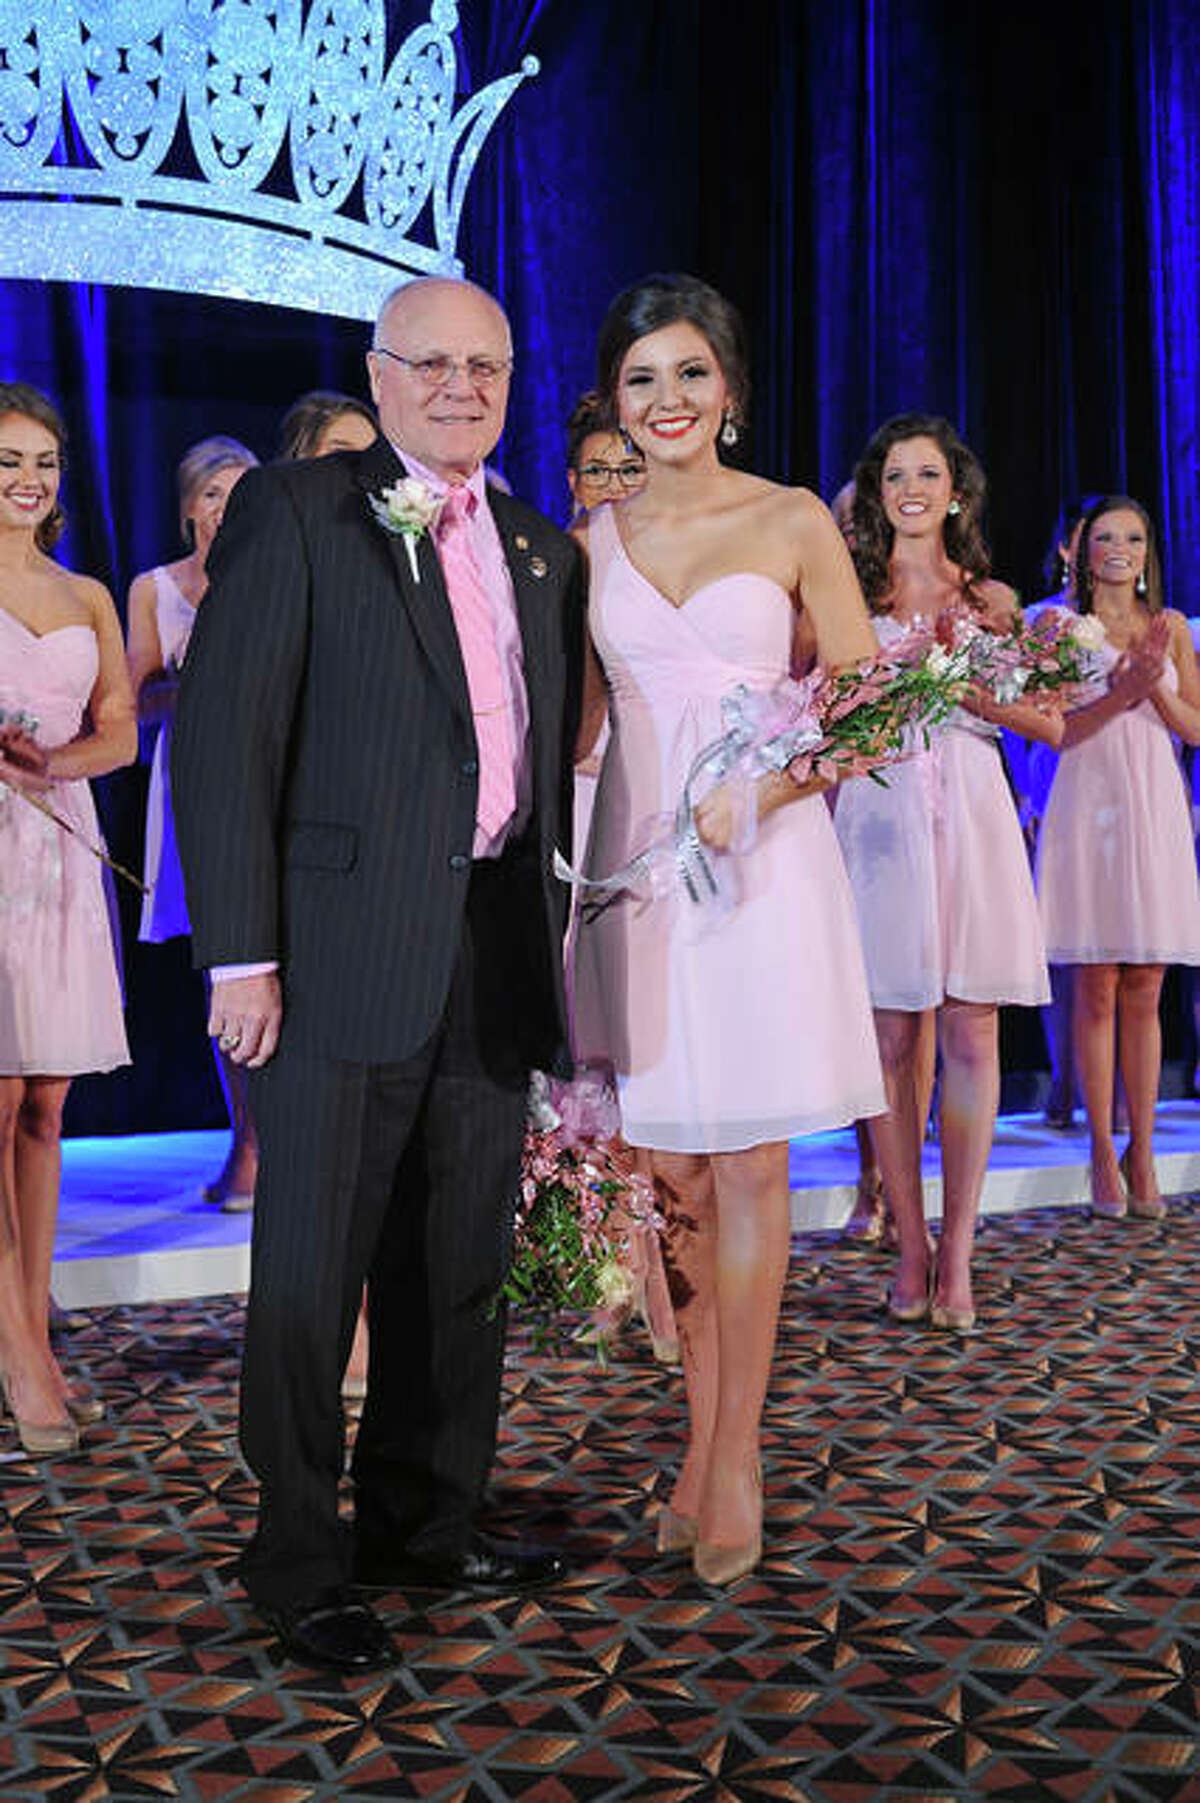 Miss Macoupin County Colleen Nichols when she was named a top 15 finalist. With her is Illinois Association of Agricultural Fairs President Bill Redshaw.